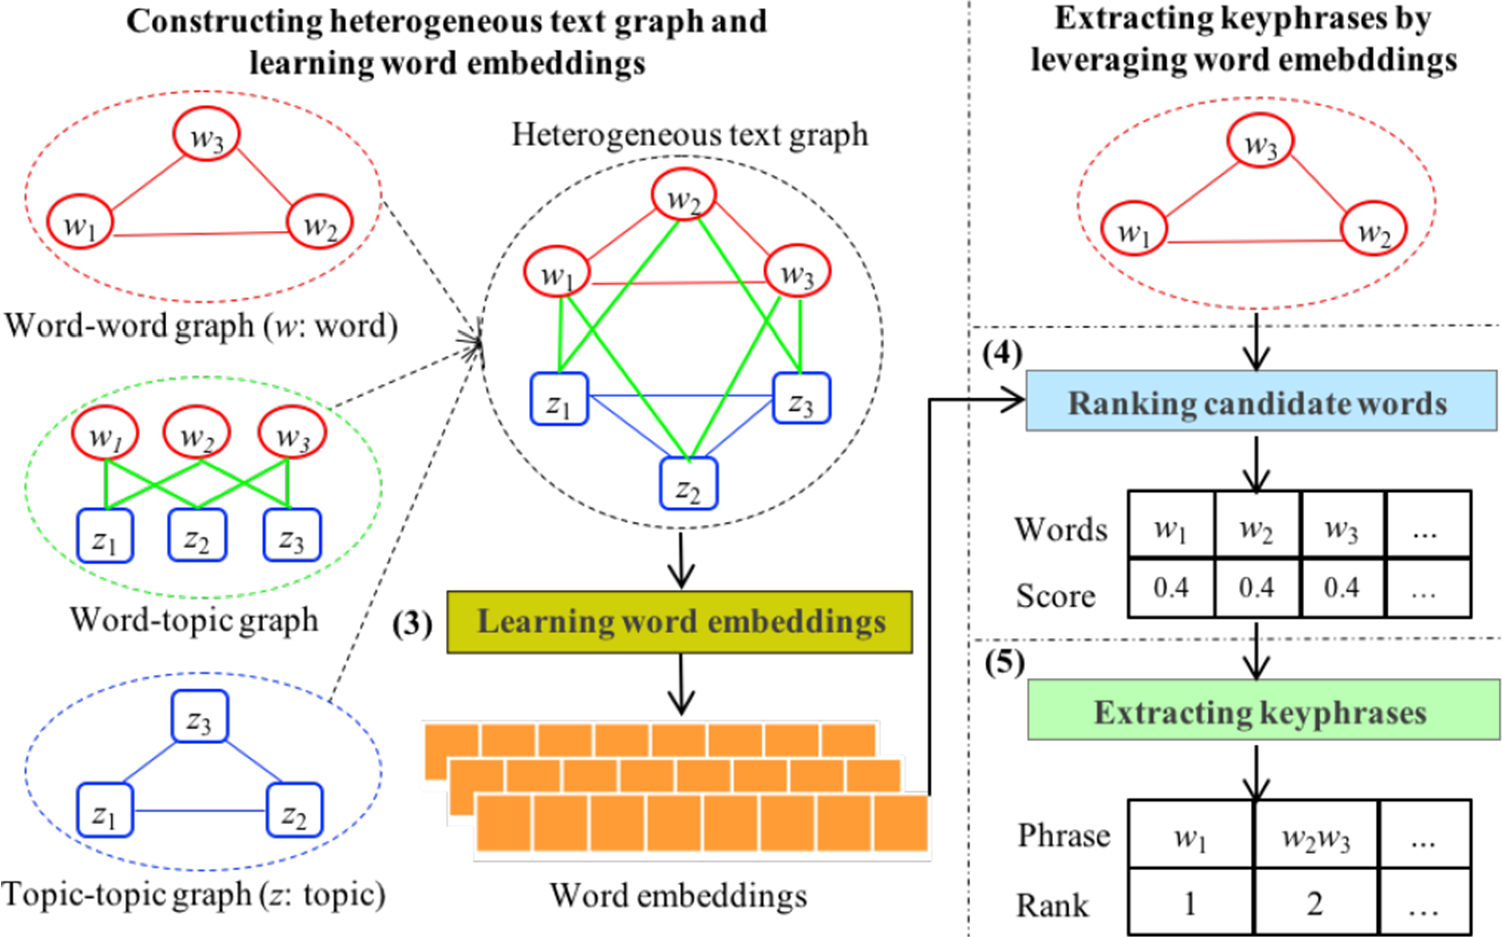 Automatic keyphrase extraction using word embeddings